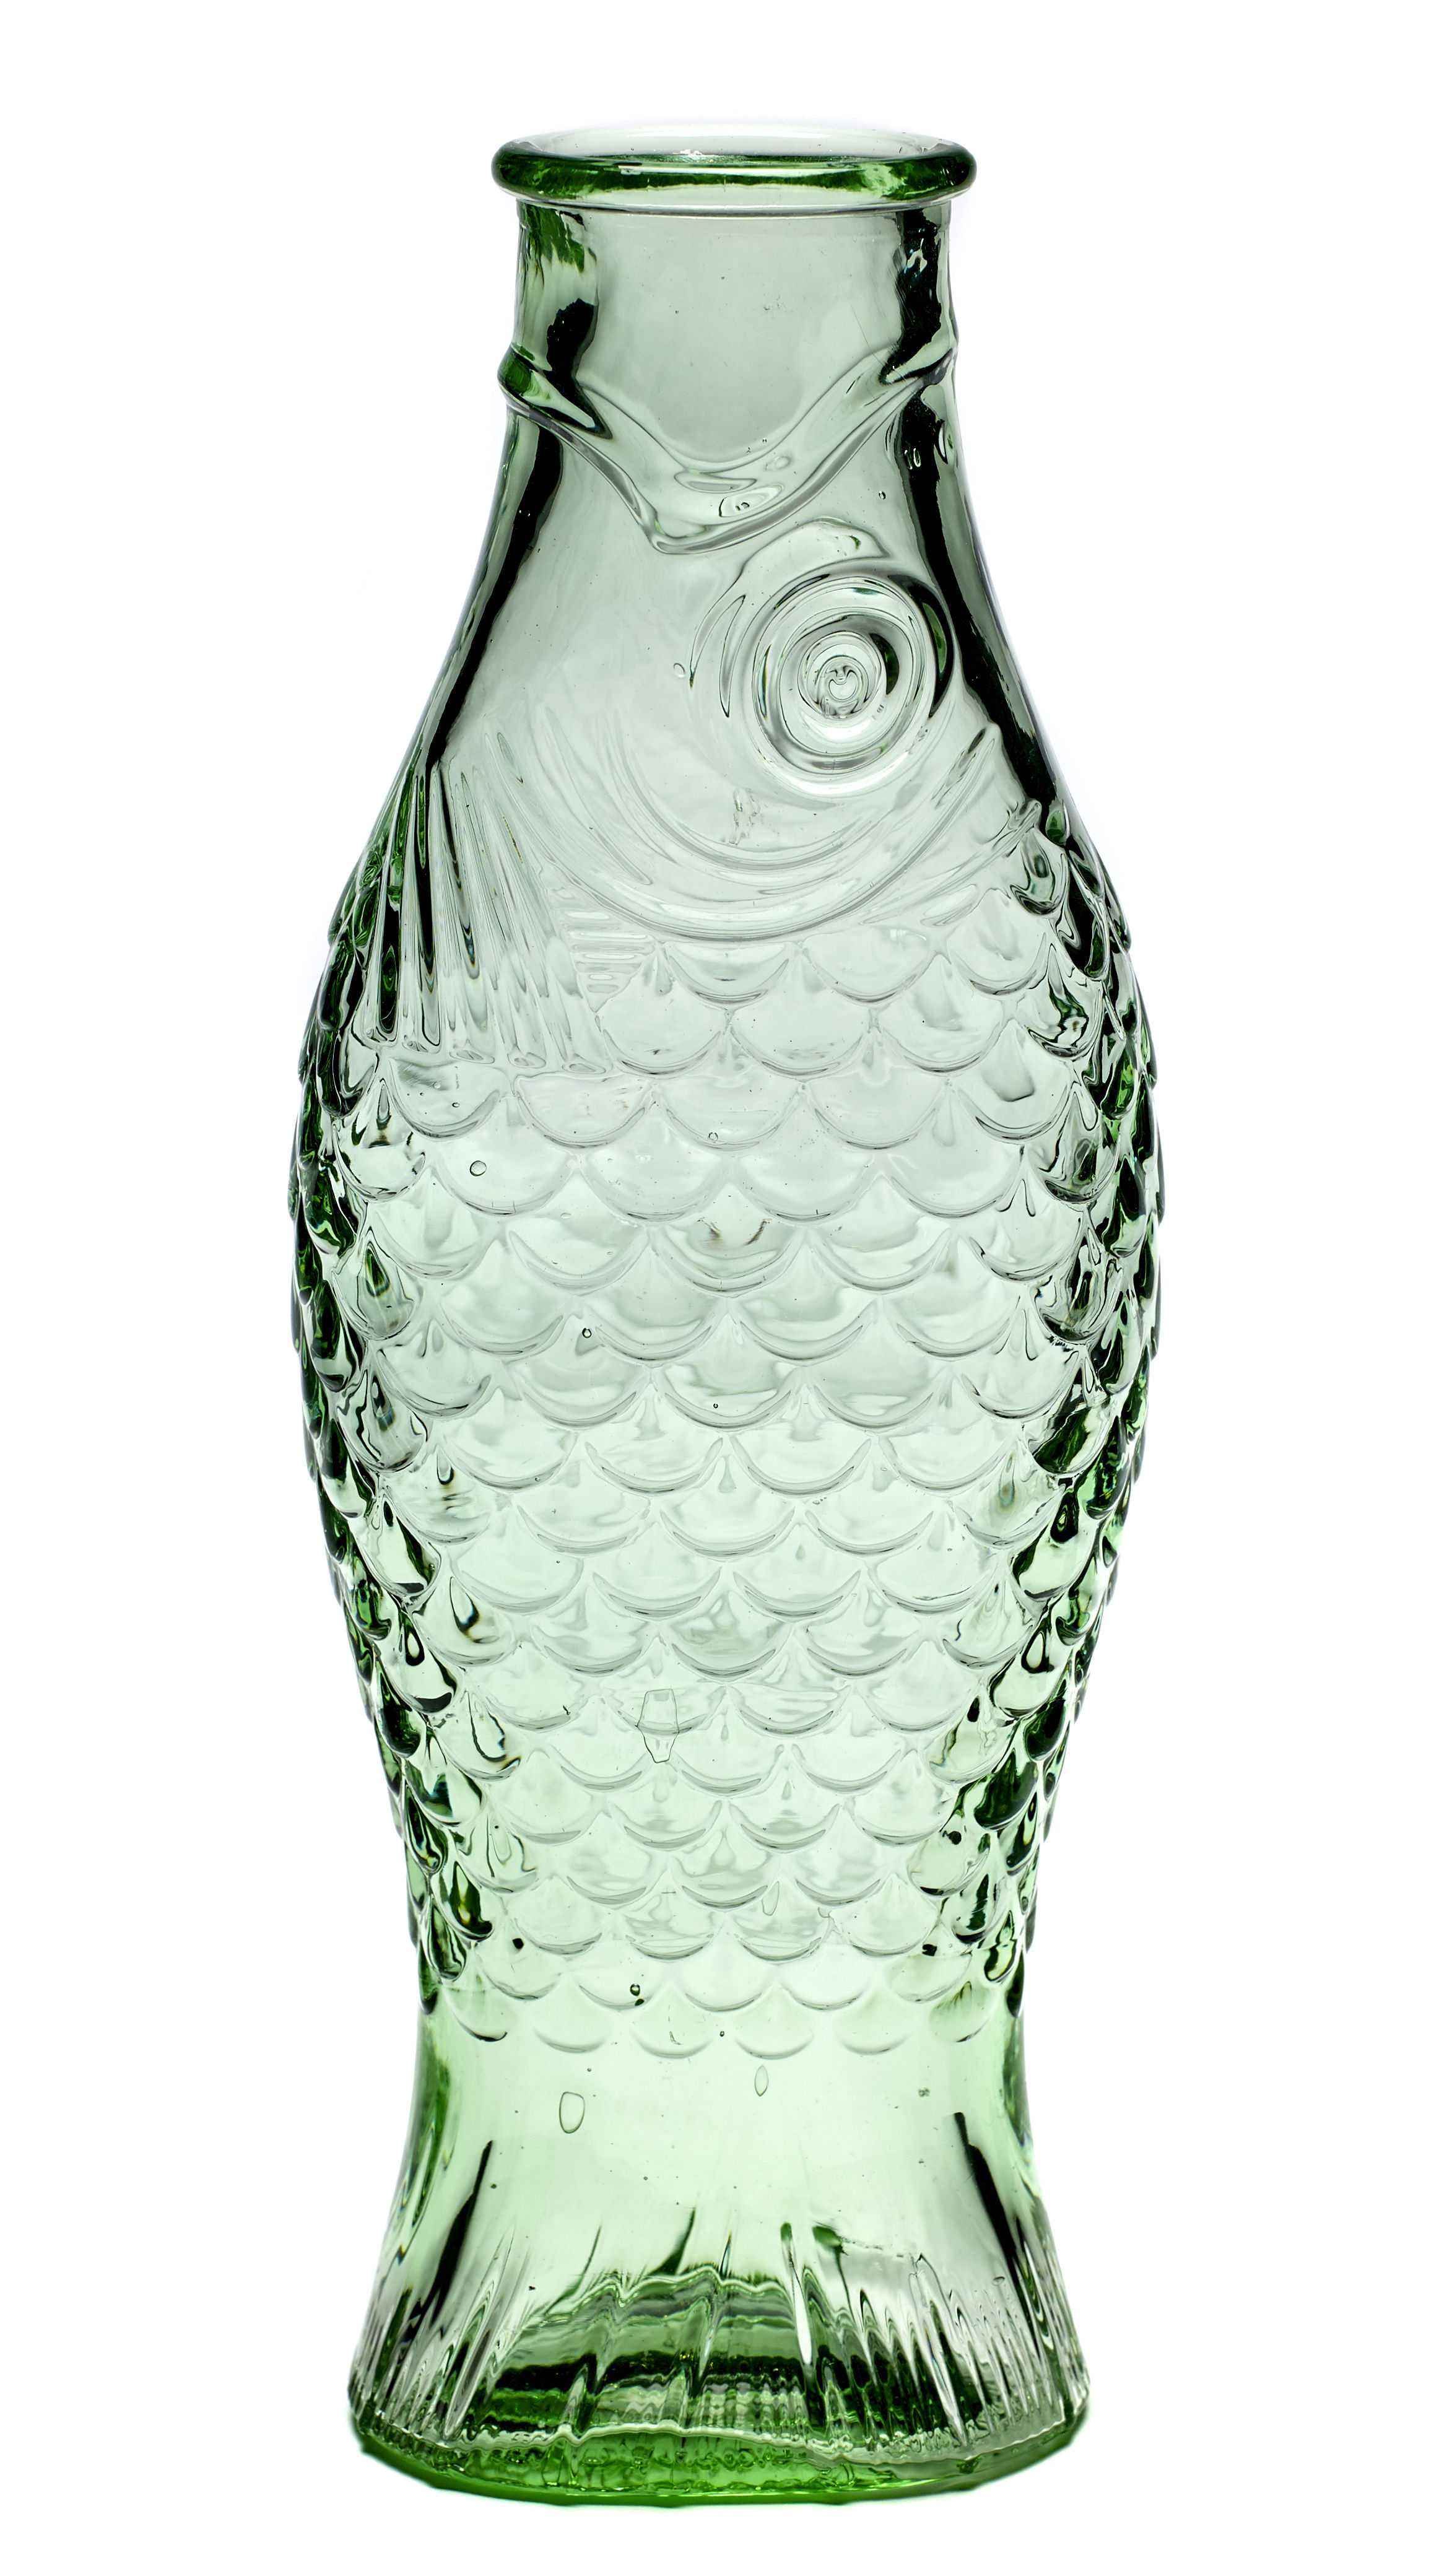 Tableware - Water Carafes & Wine Decanters - Fish & Fish Carafe - / 1L by Serax - Transparent glass - Pressed glass